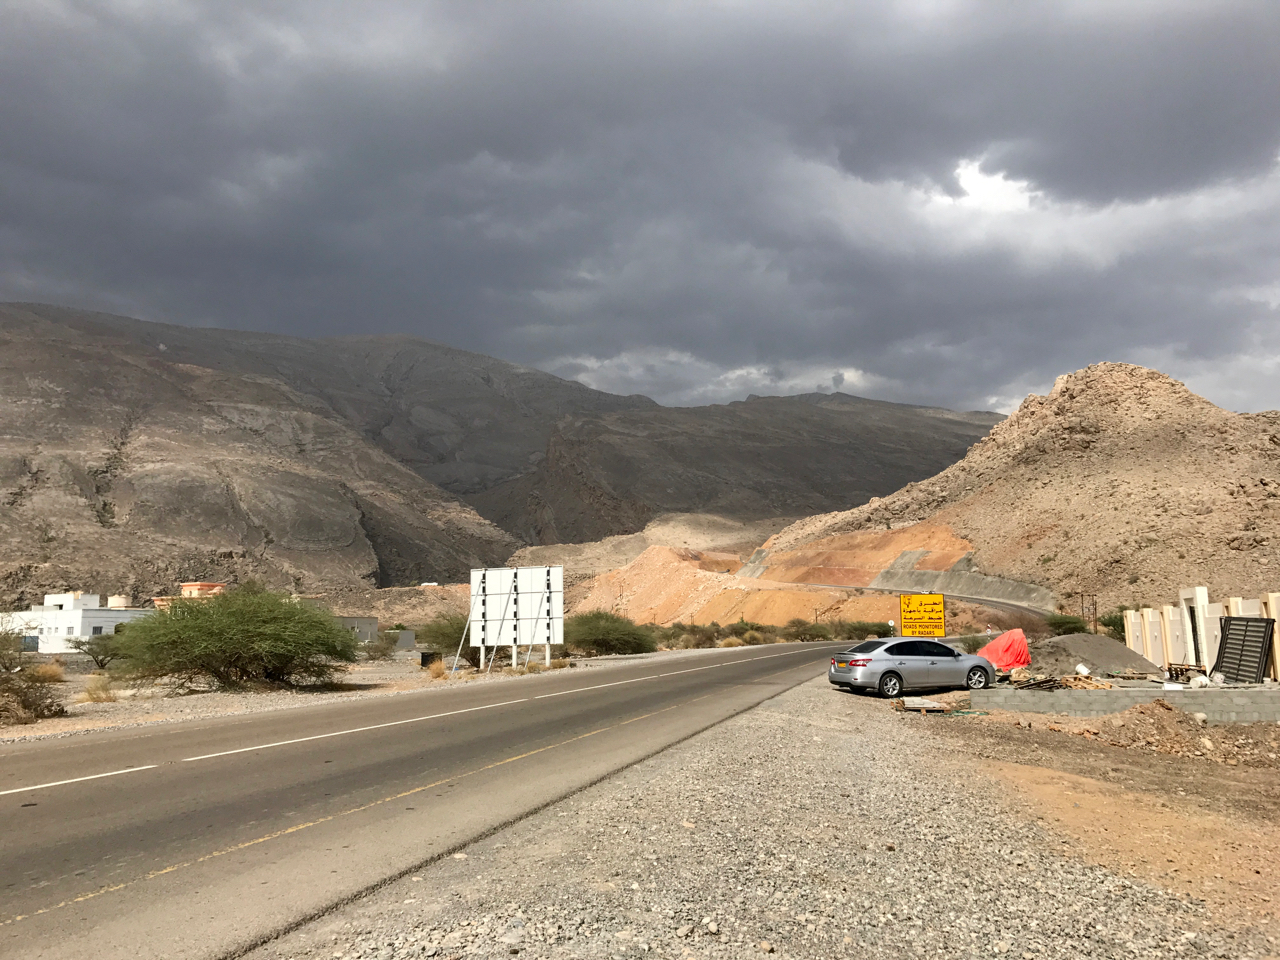 Road trip in Oman - winding roads and mountains